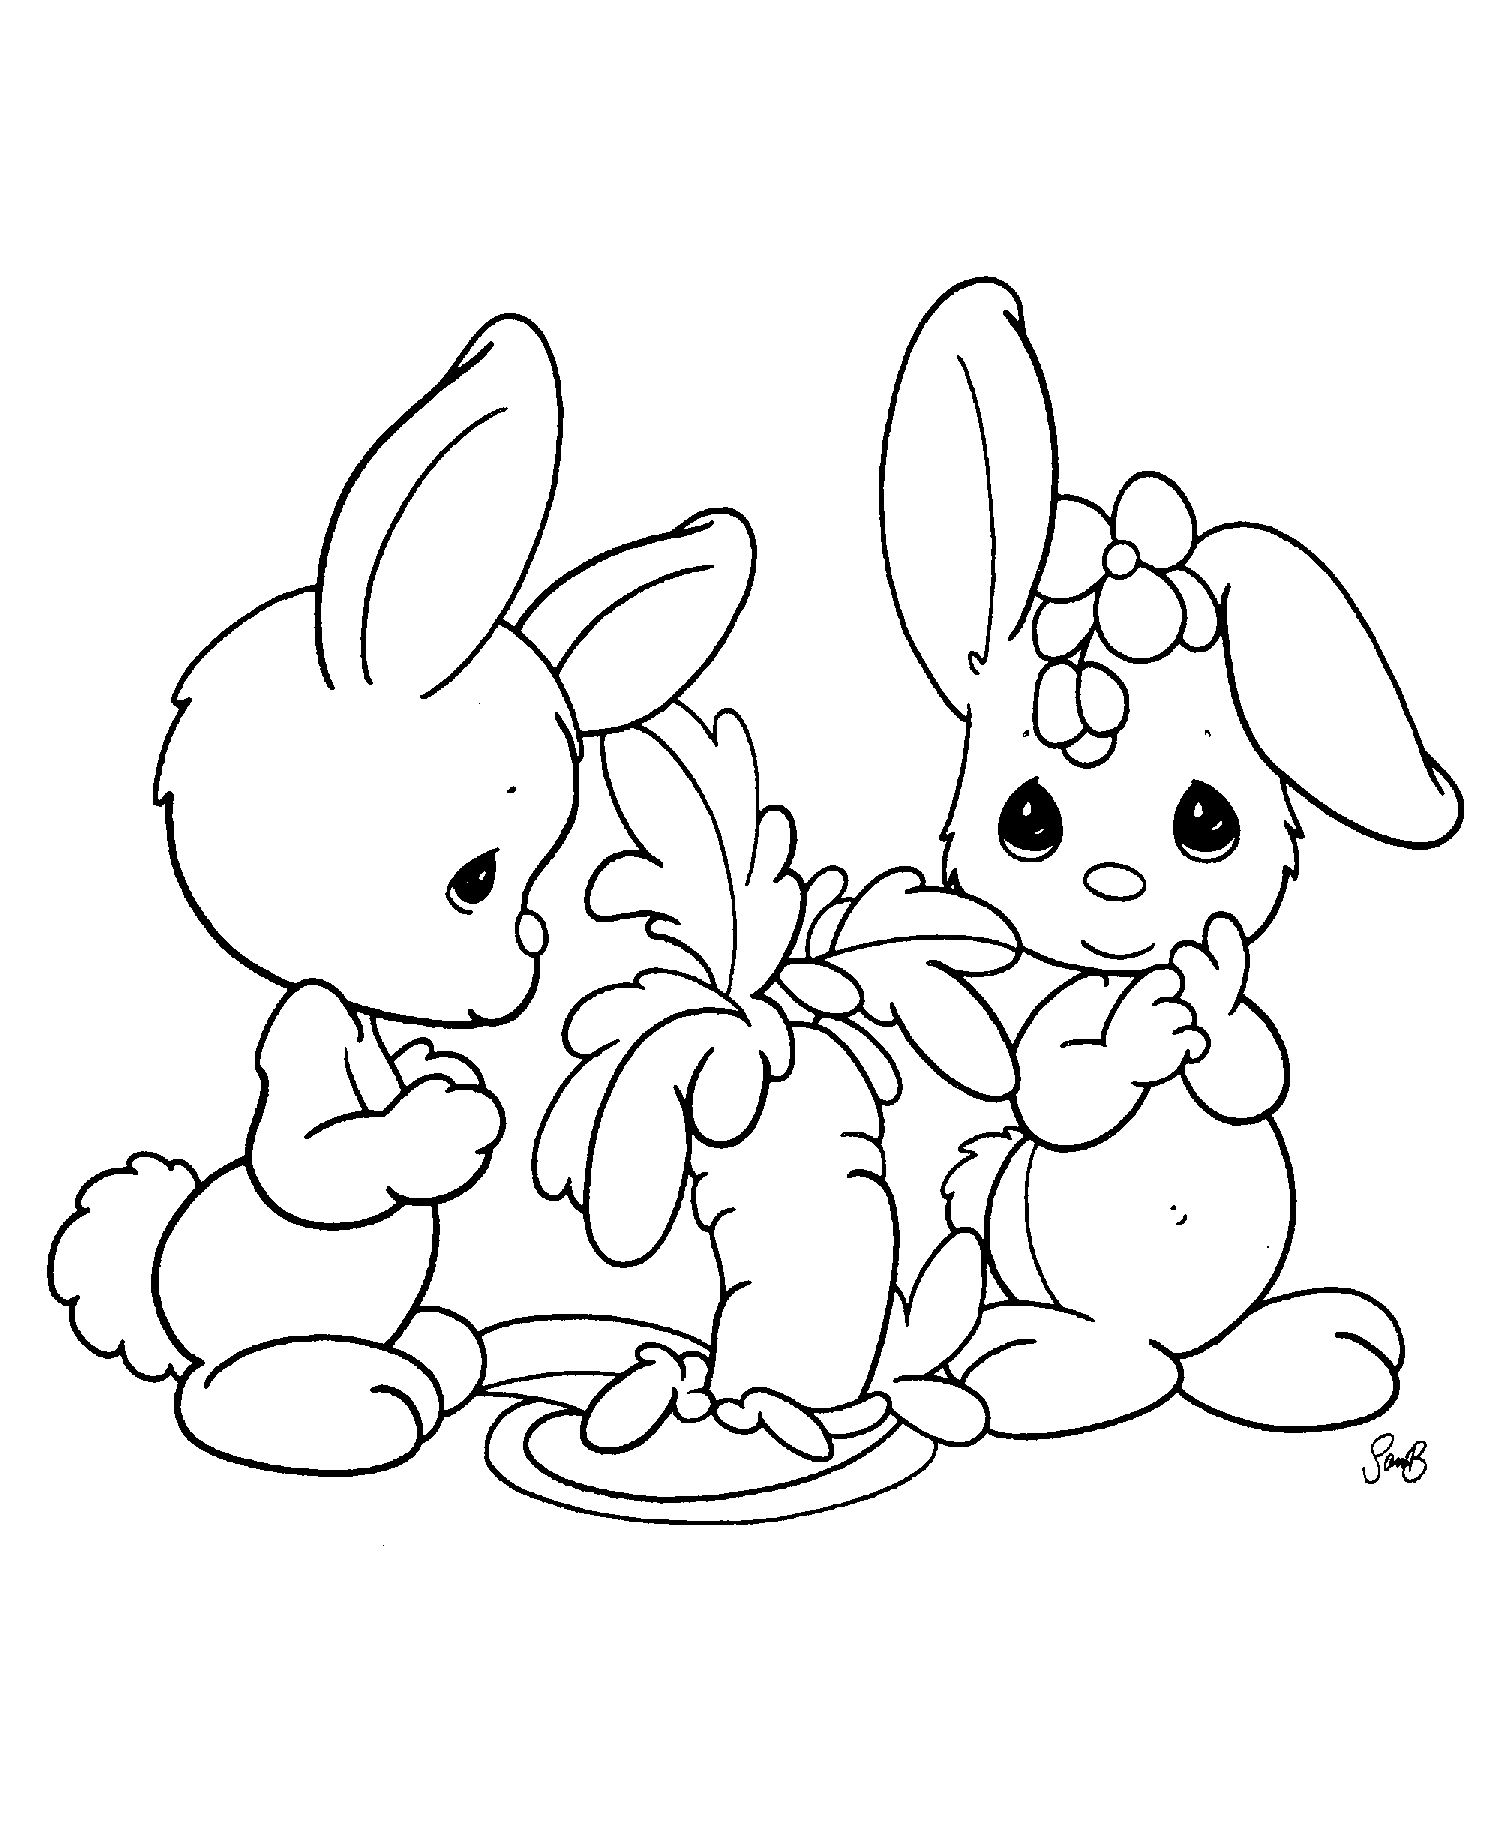 Baby Bunny Coloring Pages - Coloring Home